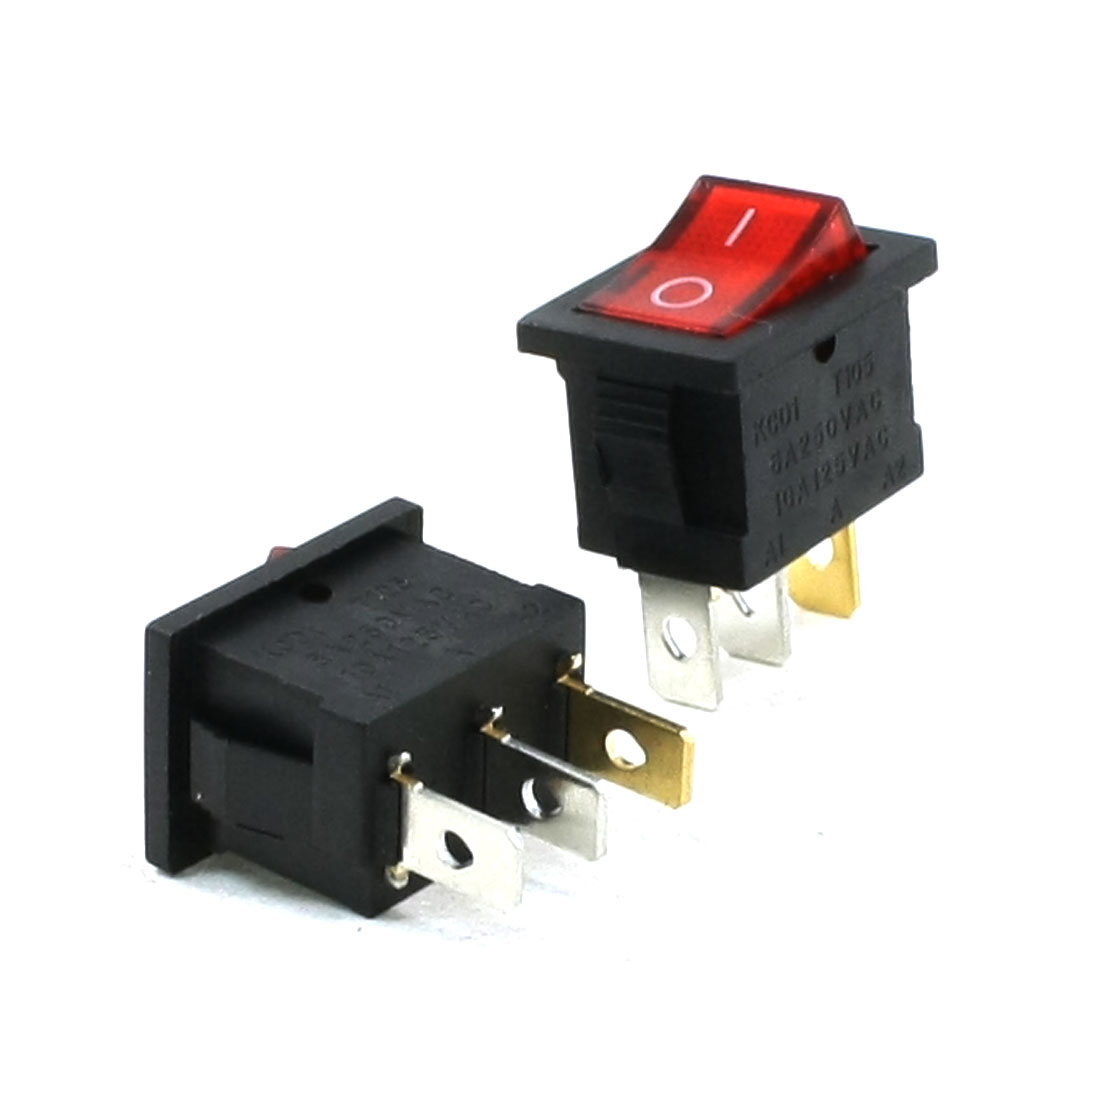 2 Pcs 3 Pin Red Lamp I/O SPST Panel Mount Rocker Switch 6A/250VAC 10A/125VAC